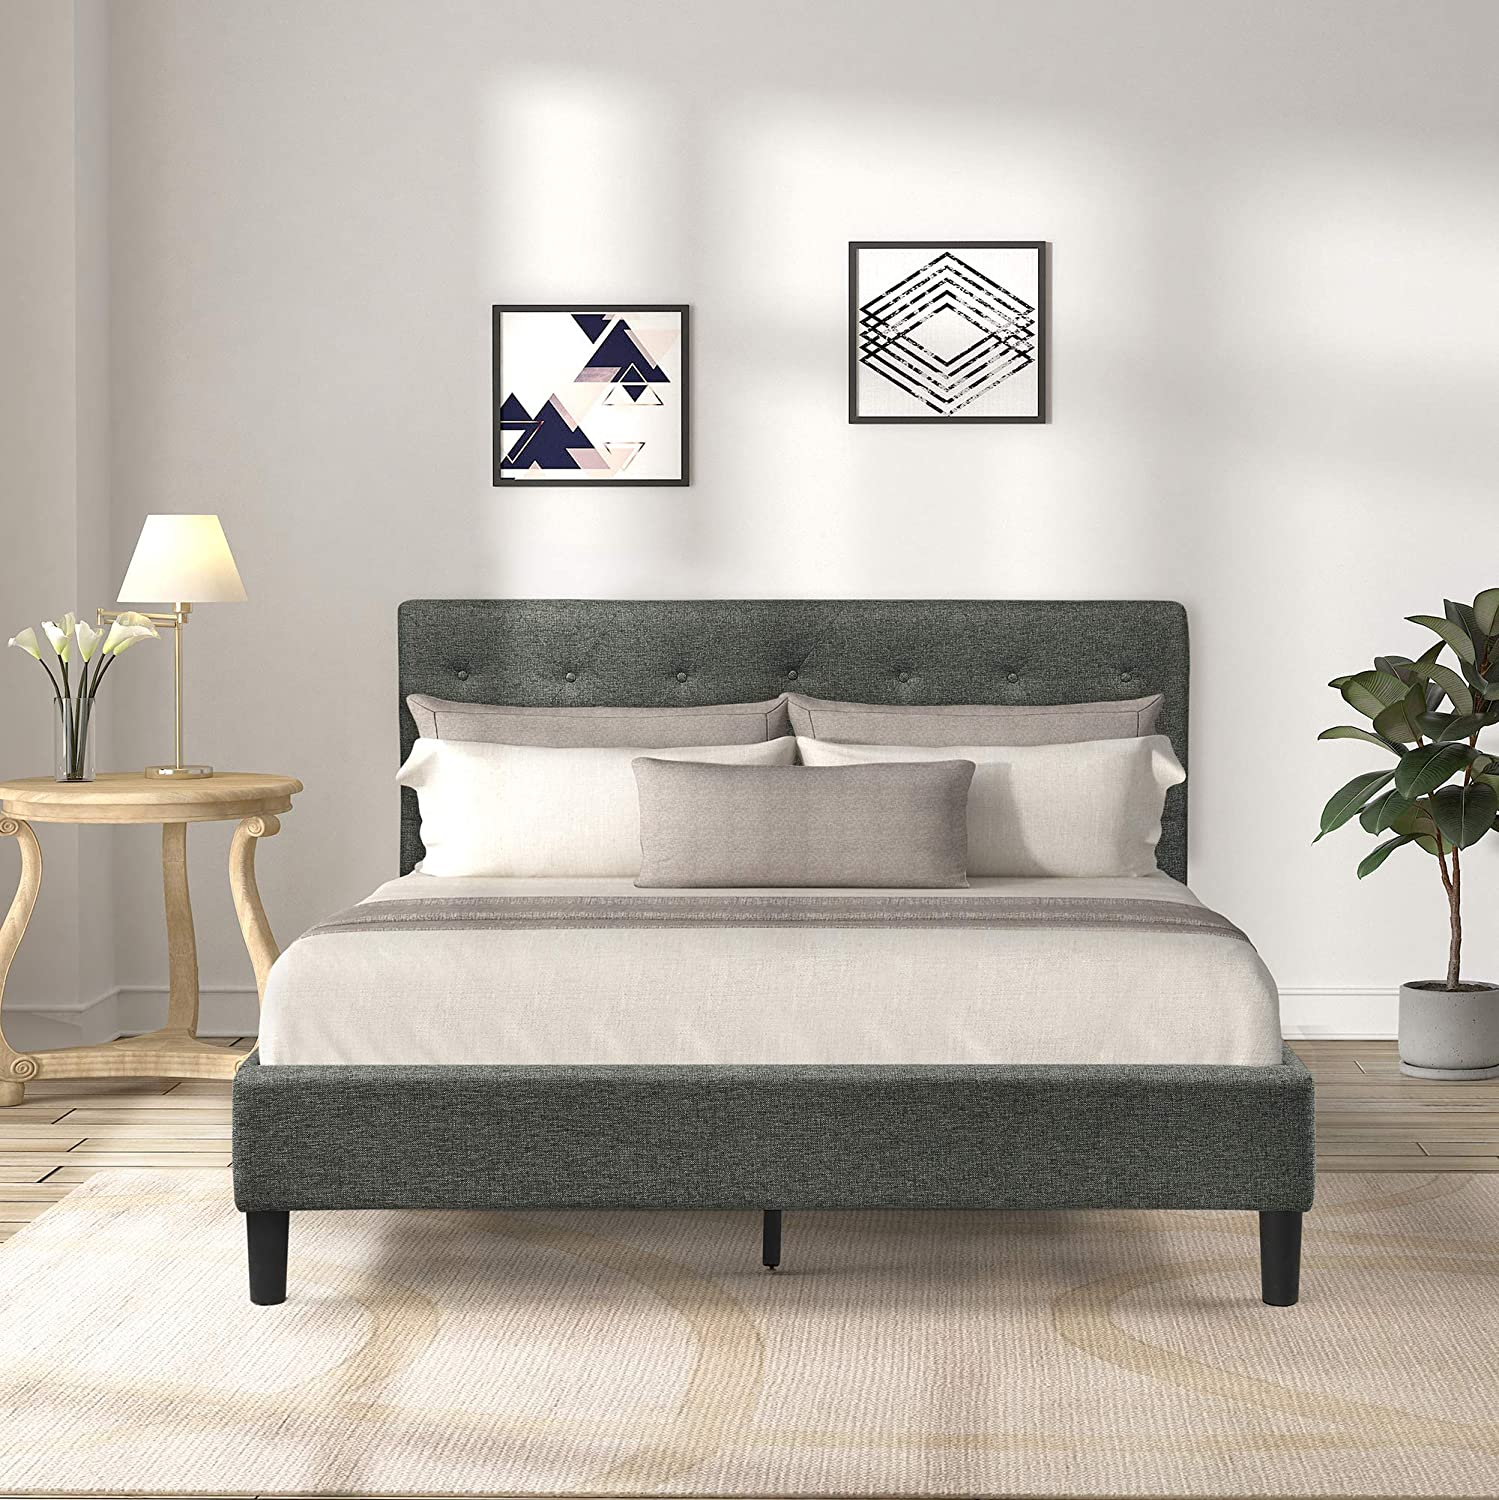 TOV Furniture The Eden Collection Grey Modern Style Velvet Upholstered Bed with Button Tufted Headboard, Queen Size, Grey